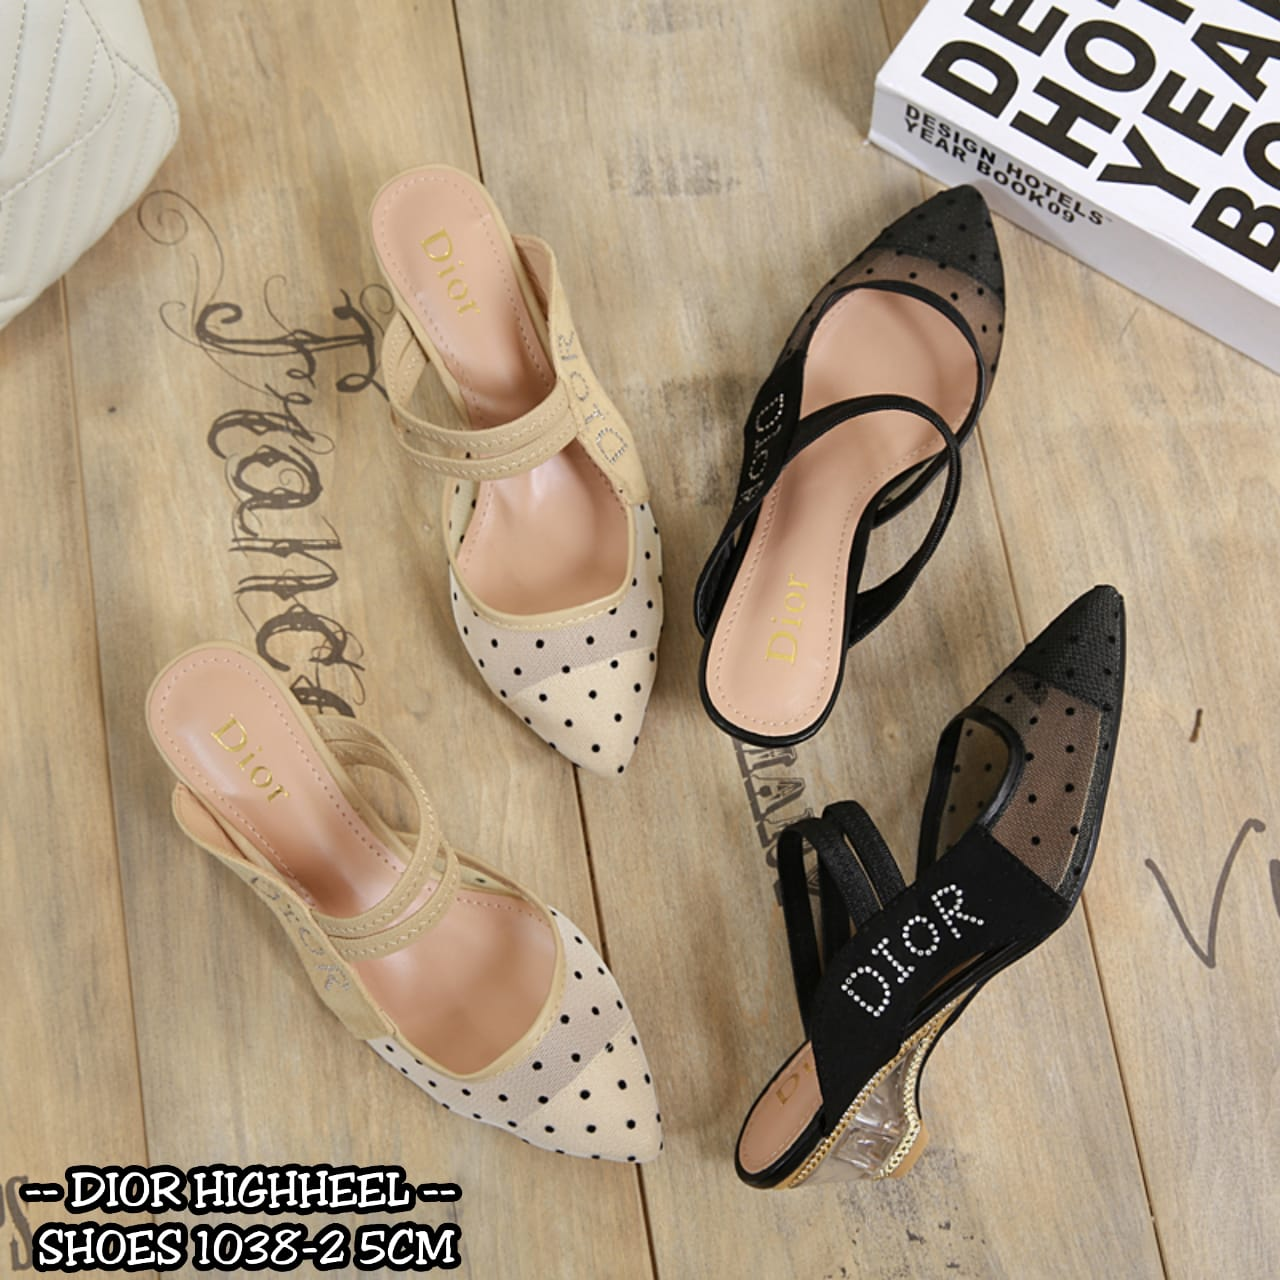 DIOR HIGHHEEL SHOES 1038-2